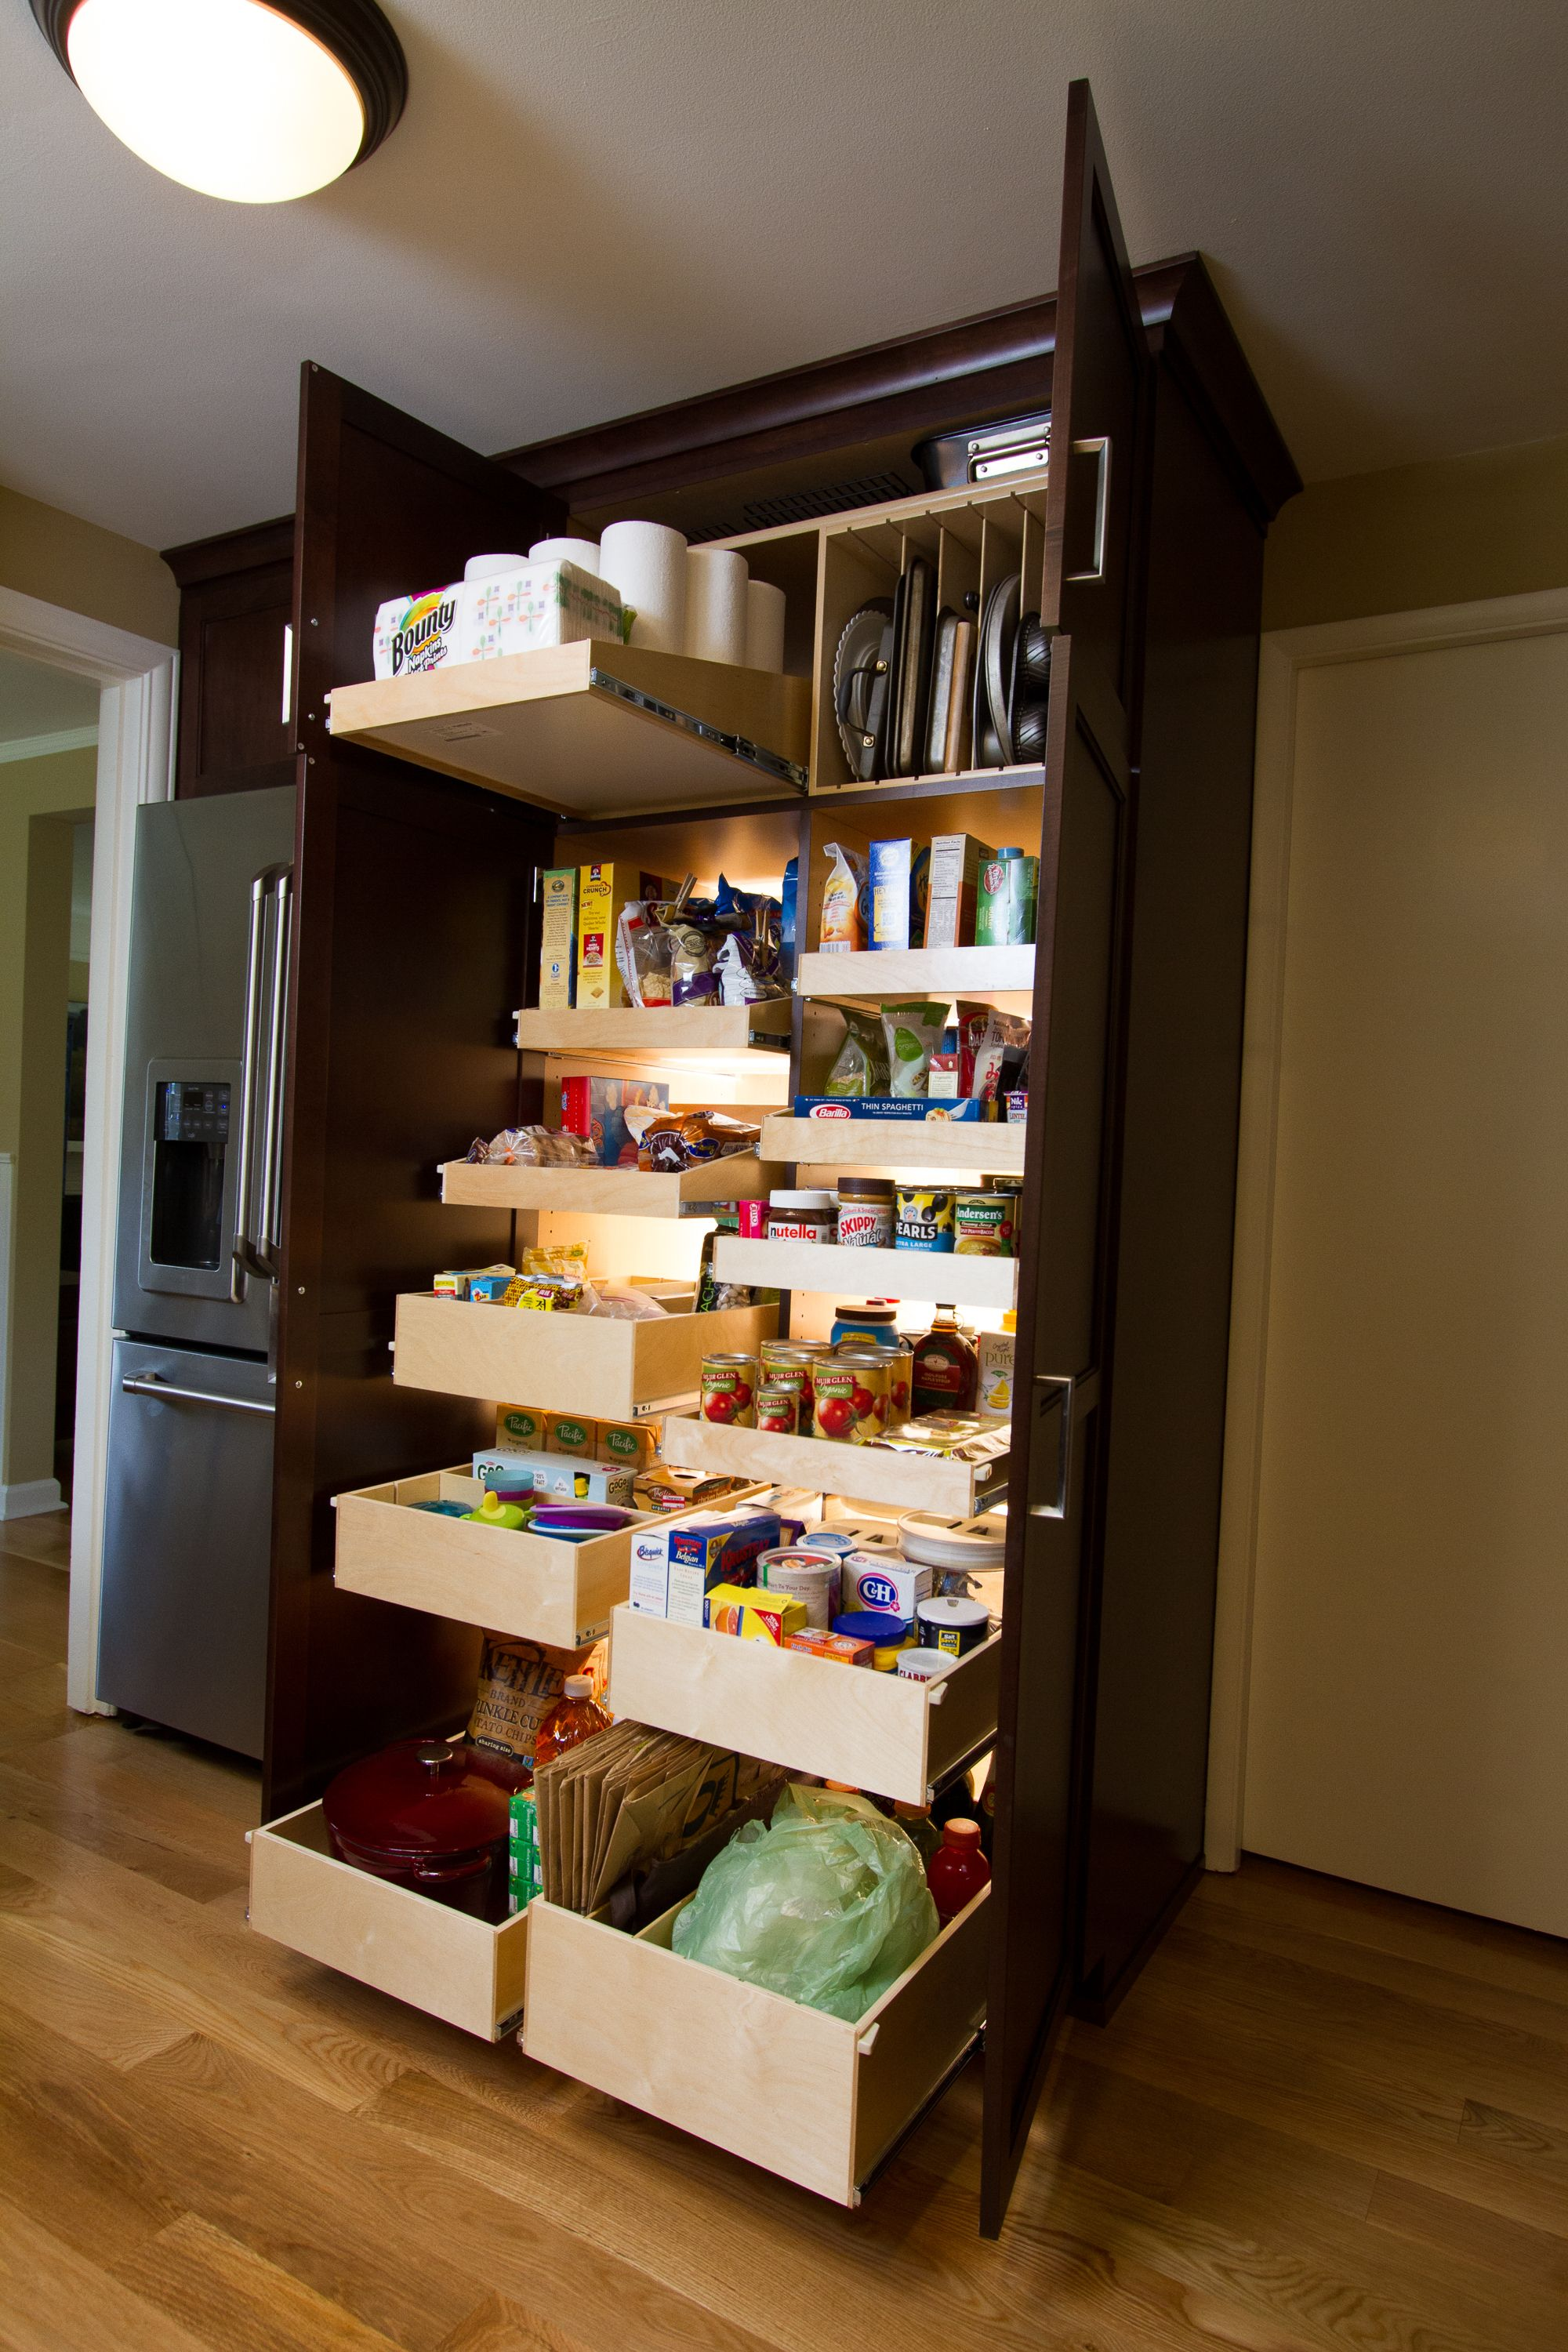 Reinstall Pull Out Pantry Shelves In 2020 Kitchen Cabinets Makeover Kitchen Cabinet Design Pantry Design